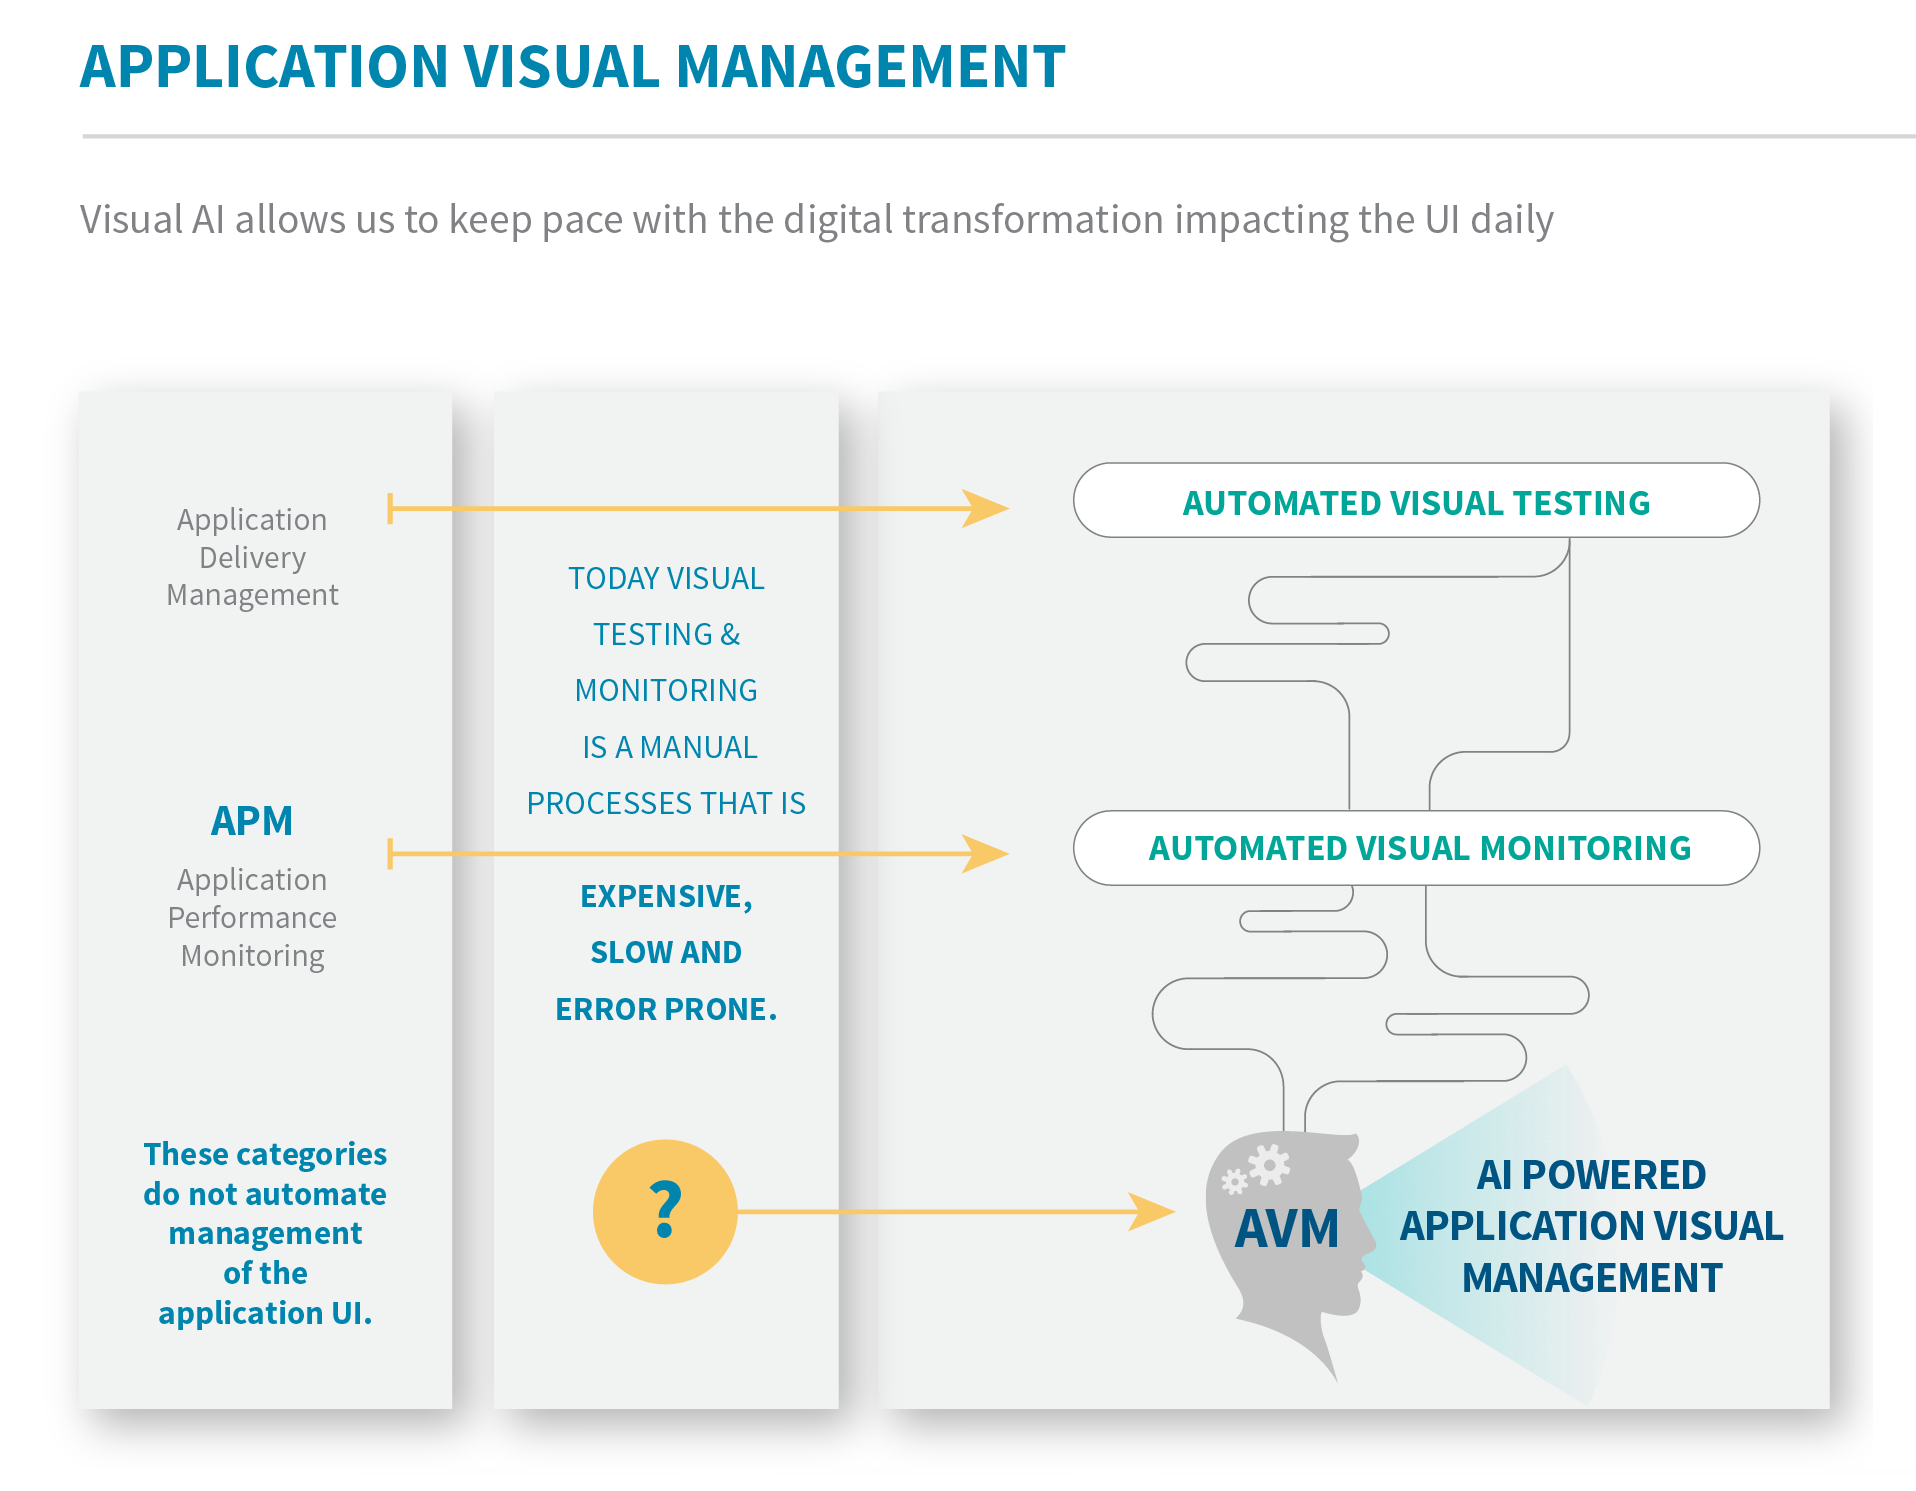 Application Visual Management (AVM)